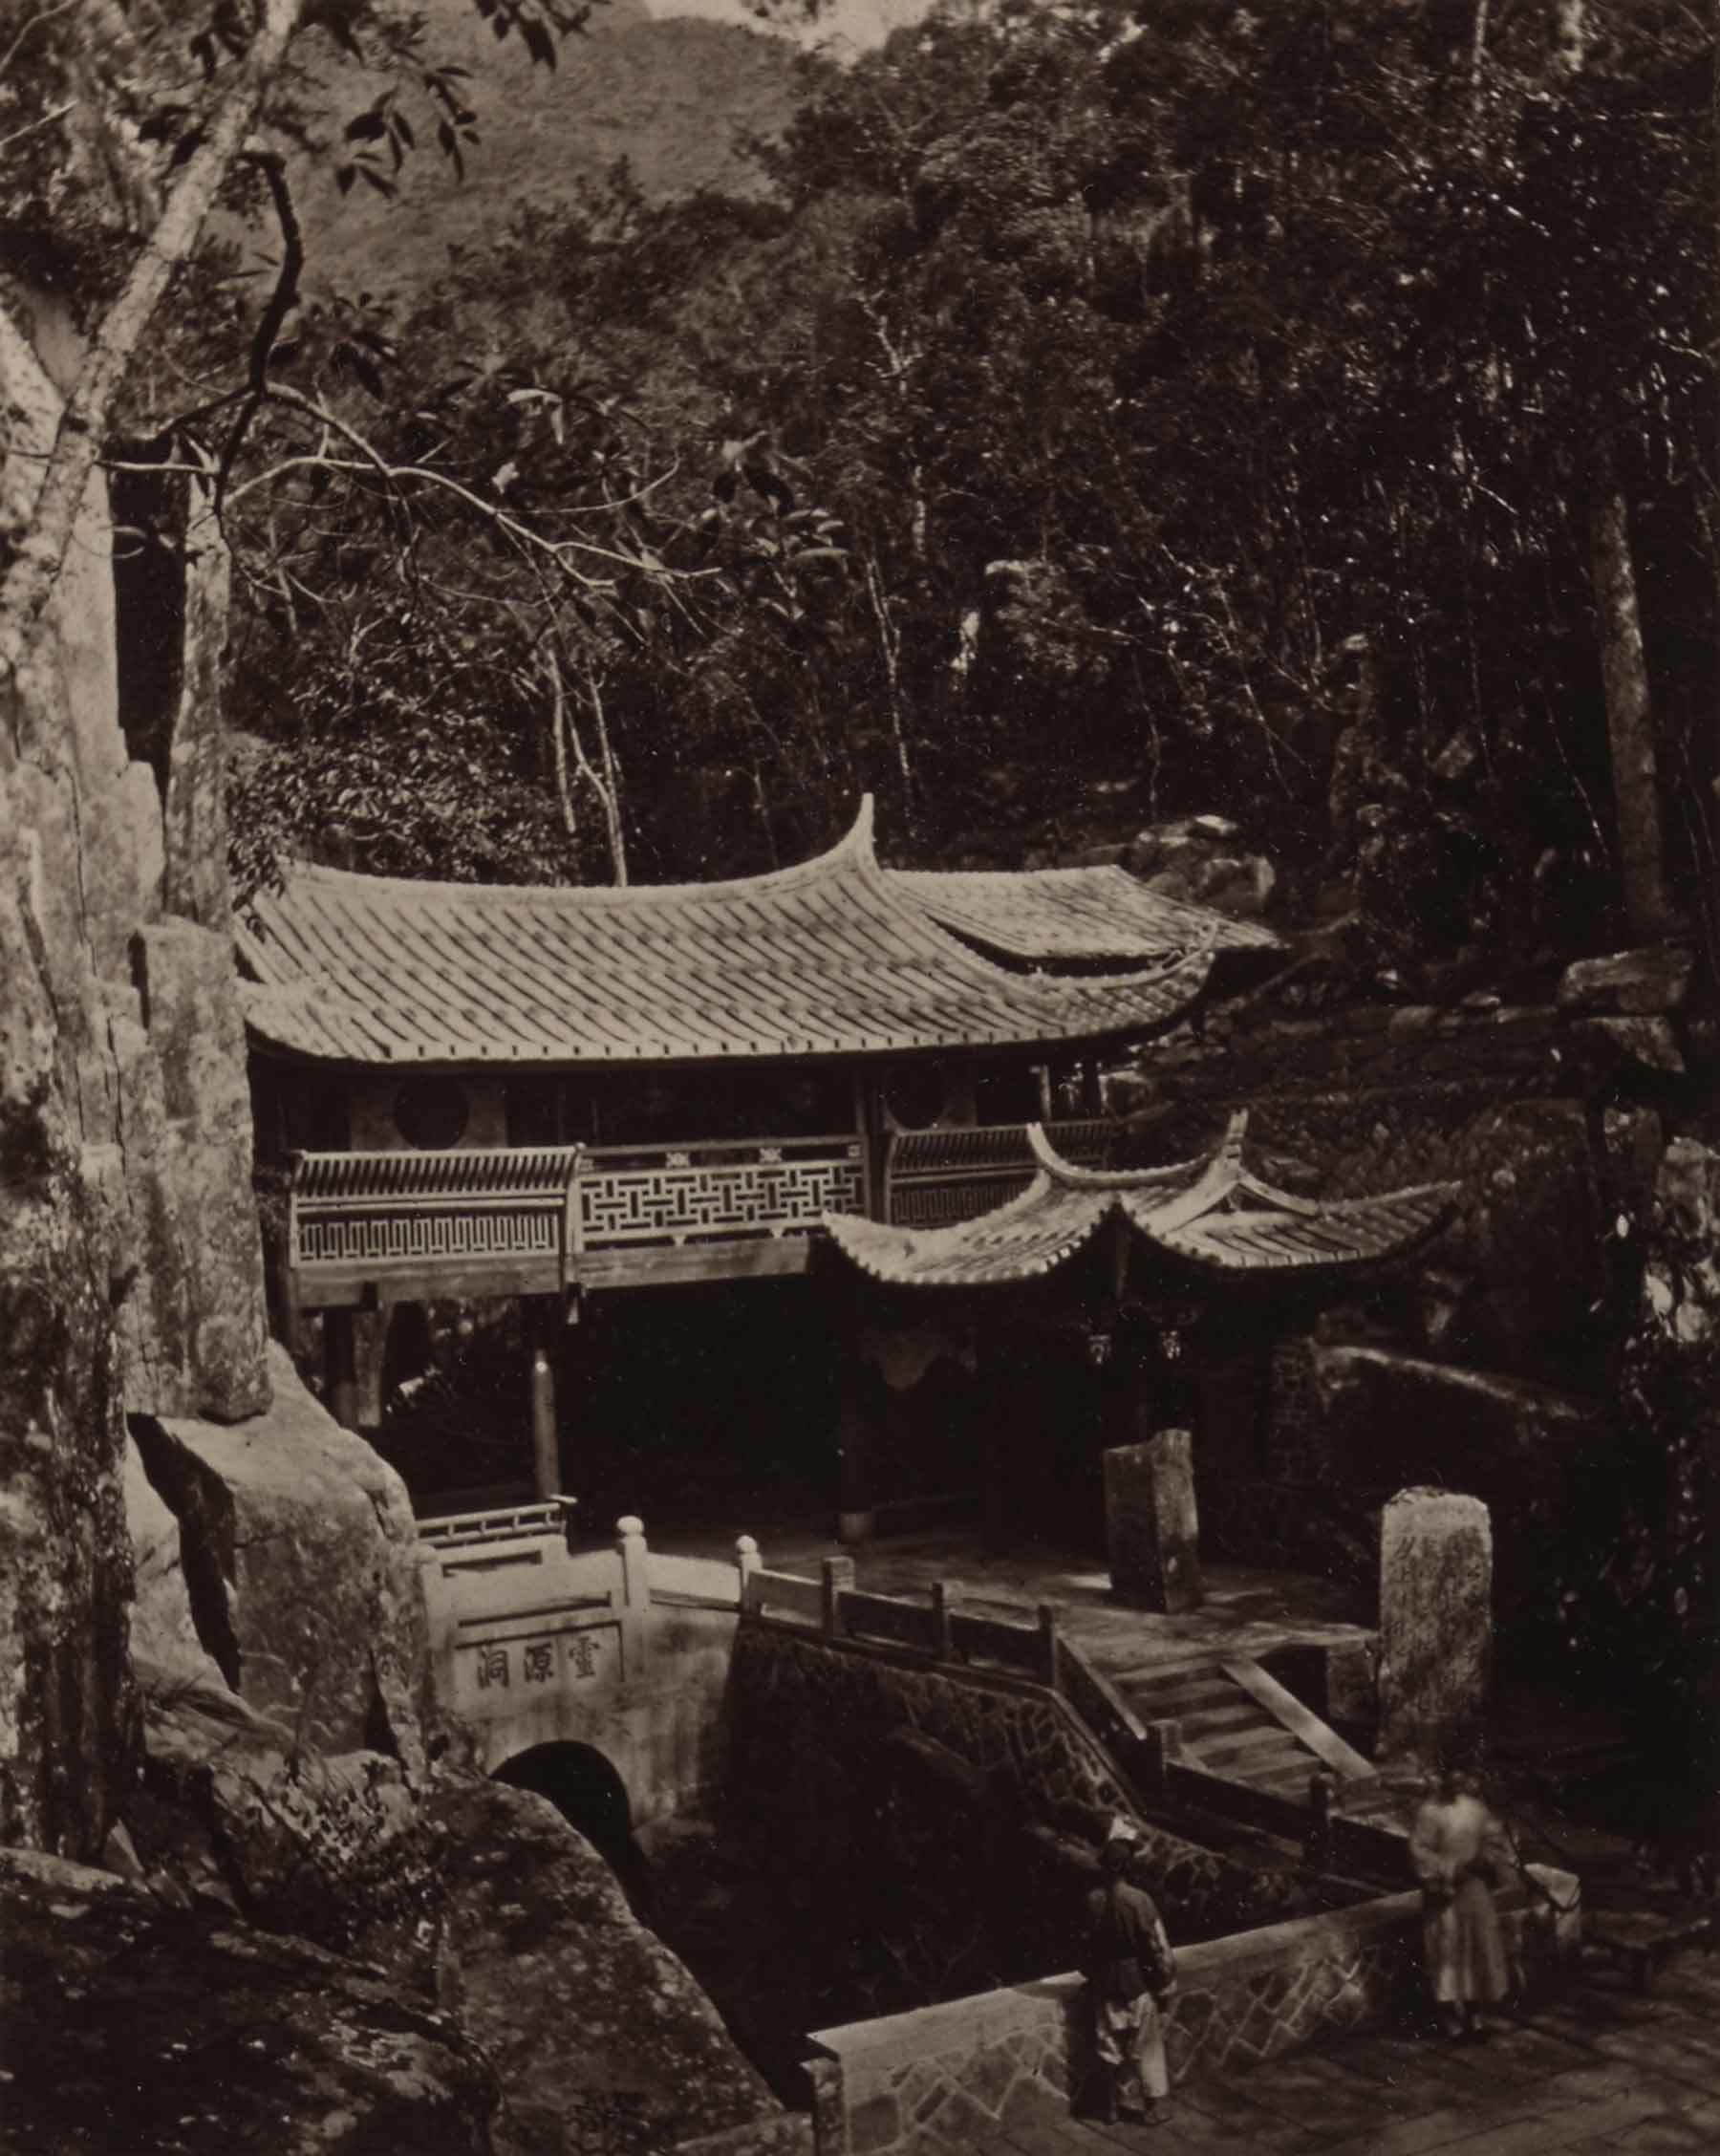 John Thomson, A Small Temple at Ku-Shan, 1870-1871